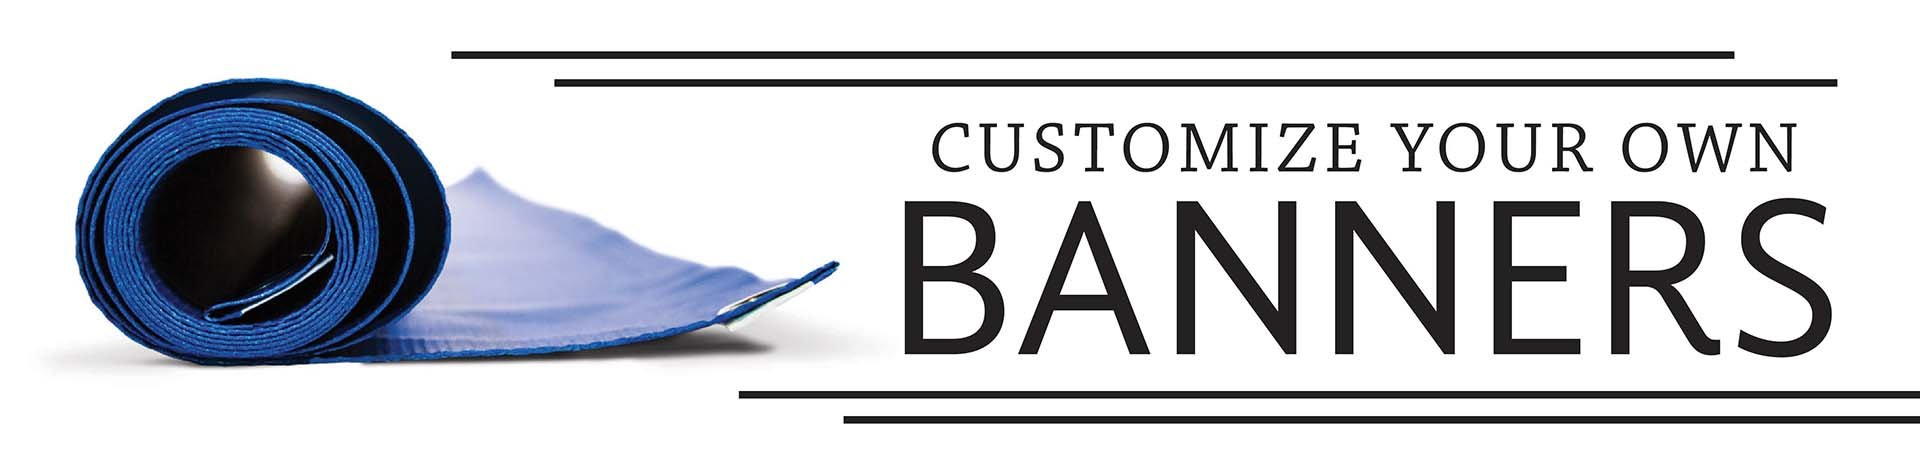 ea19dba846 Design Your Own Banners